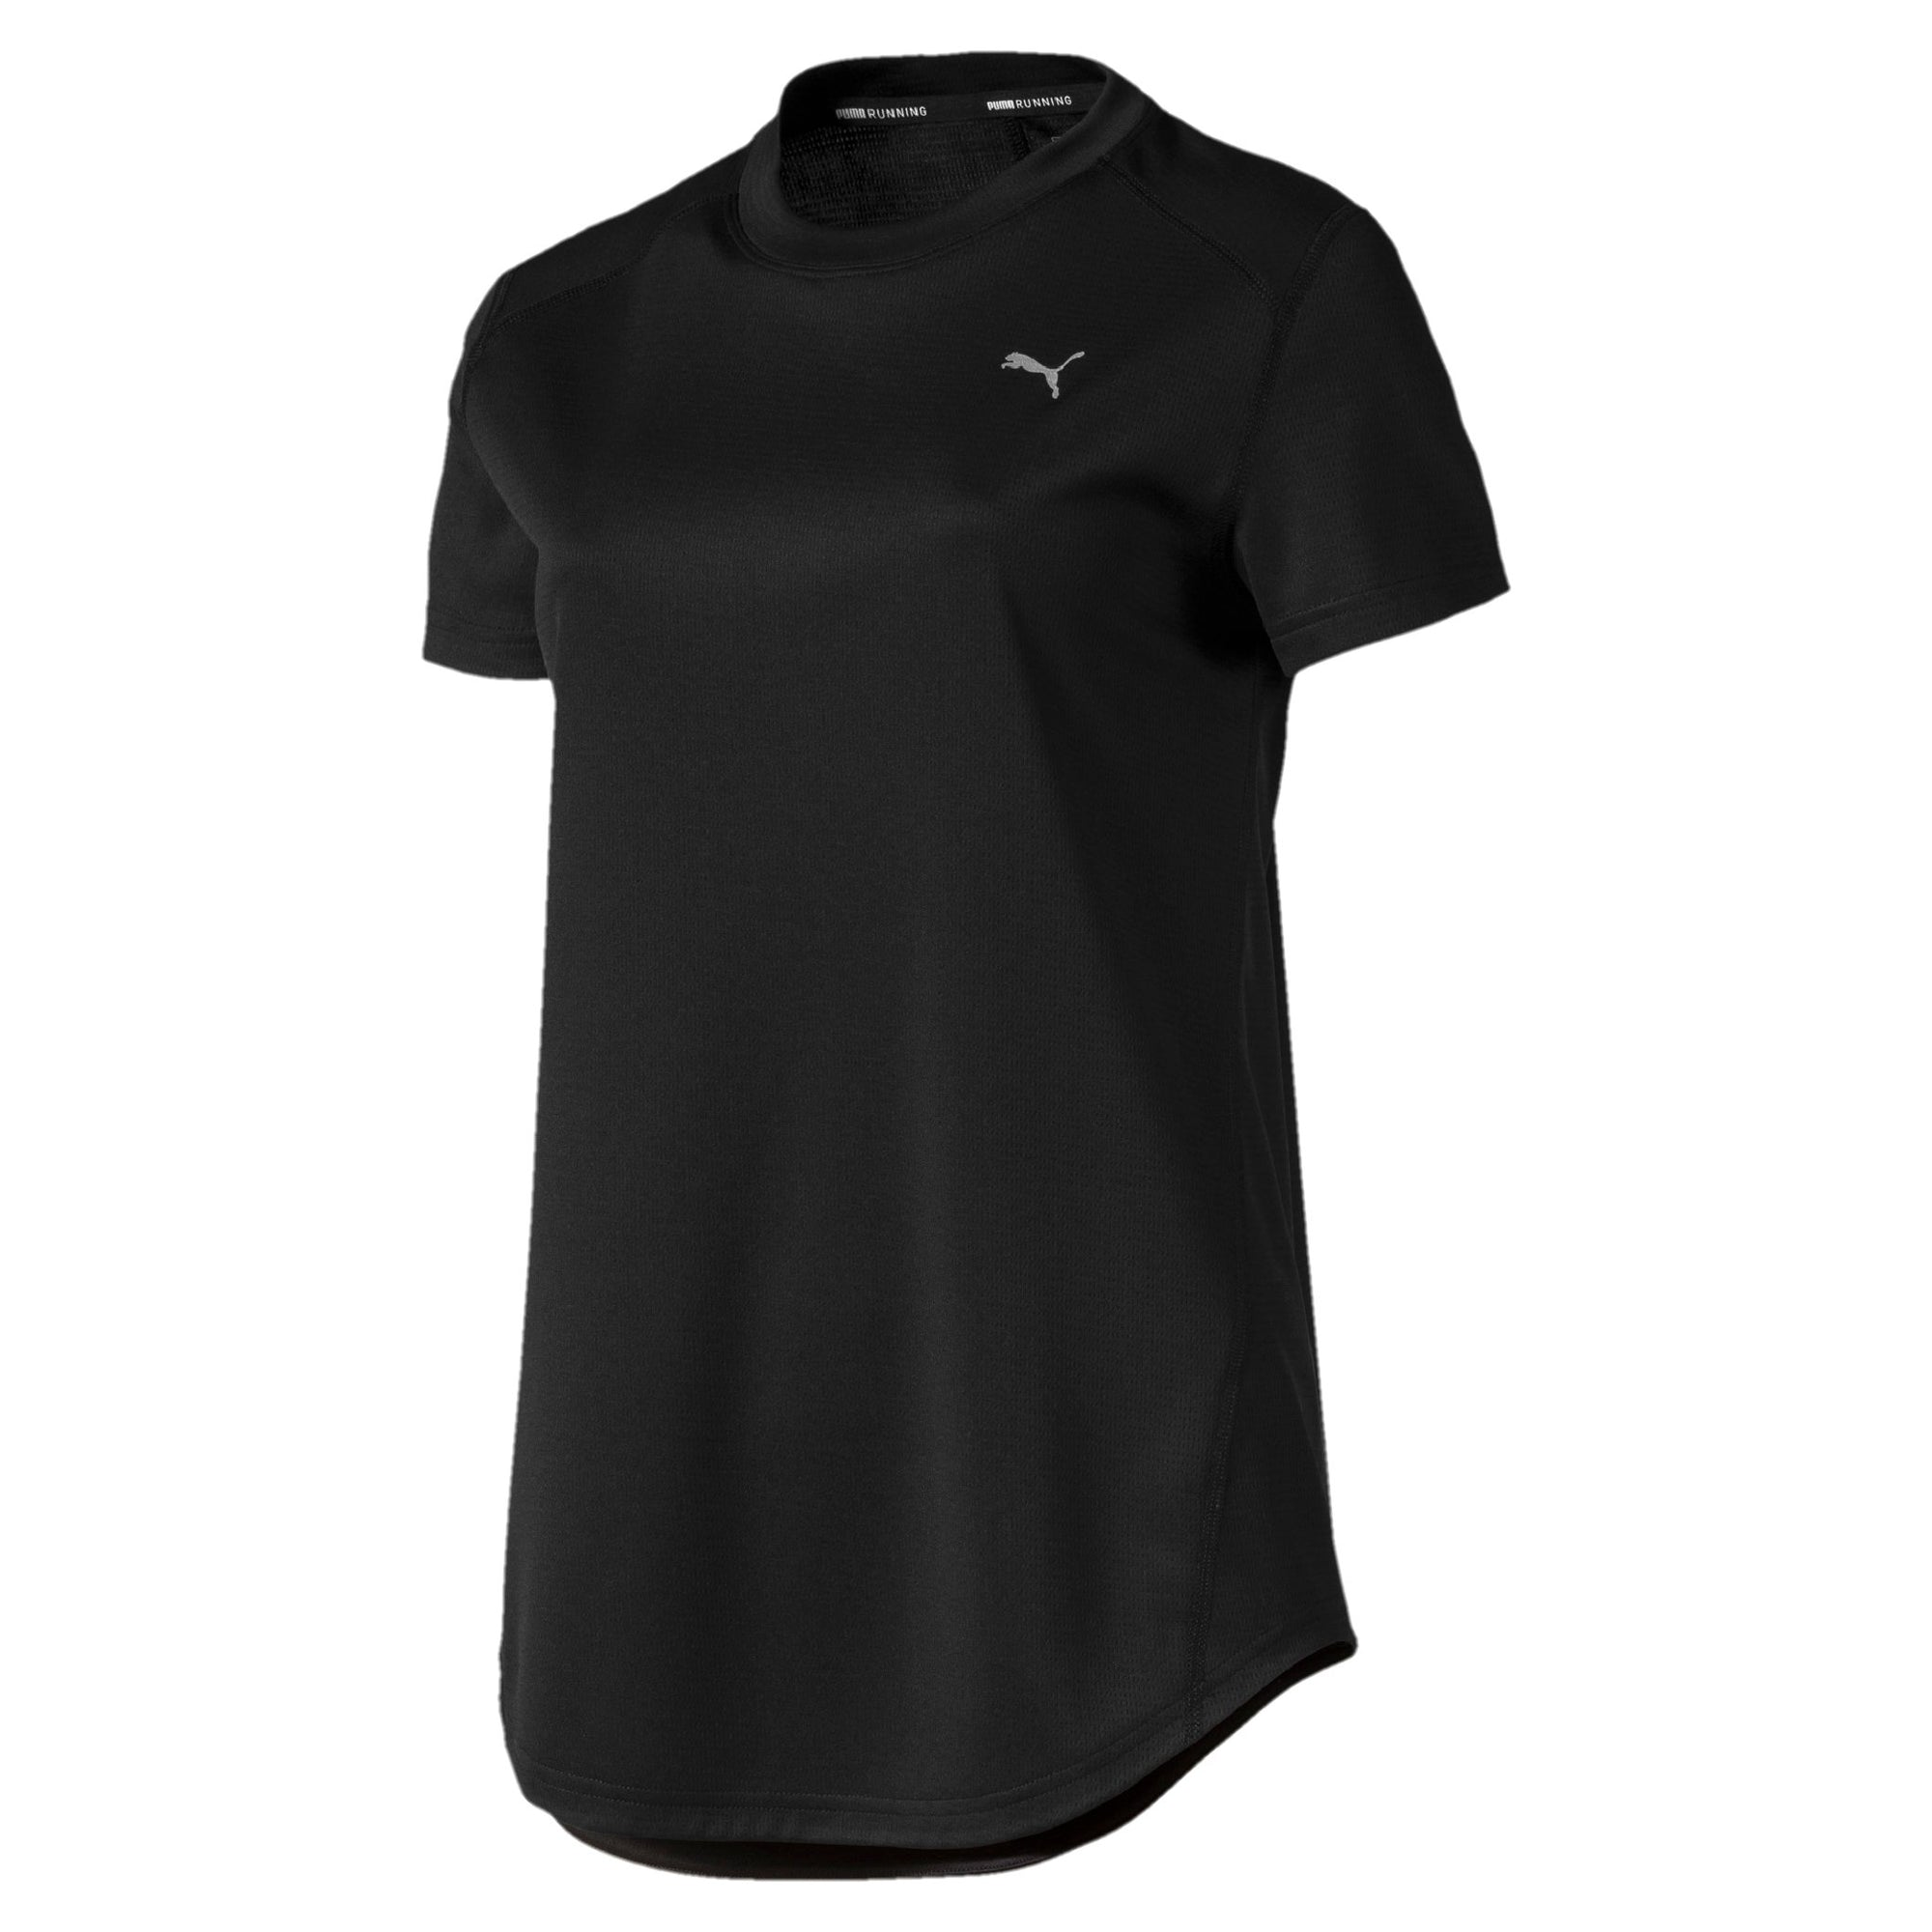 Puma Ignite S/S Tee (Womens) Apparel - Women Puma